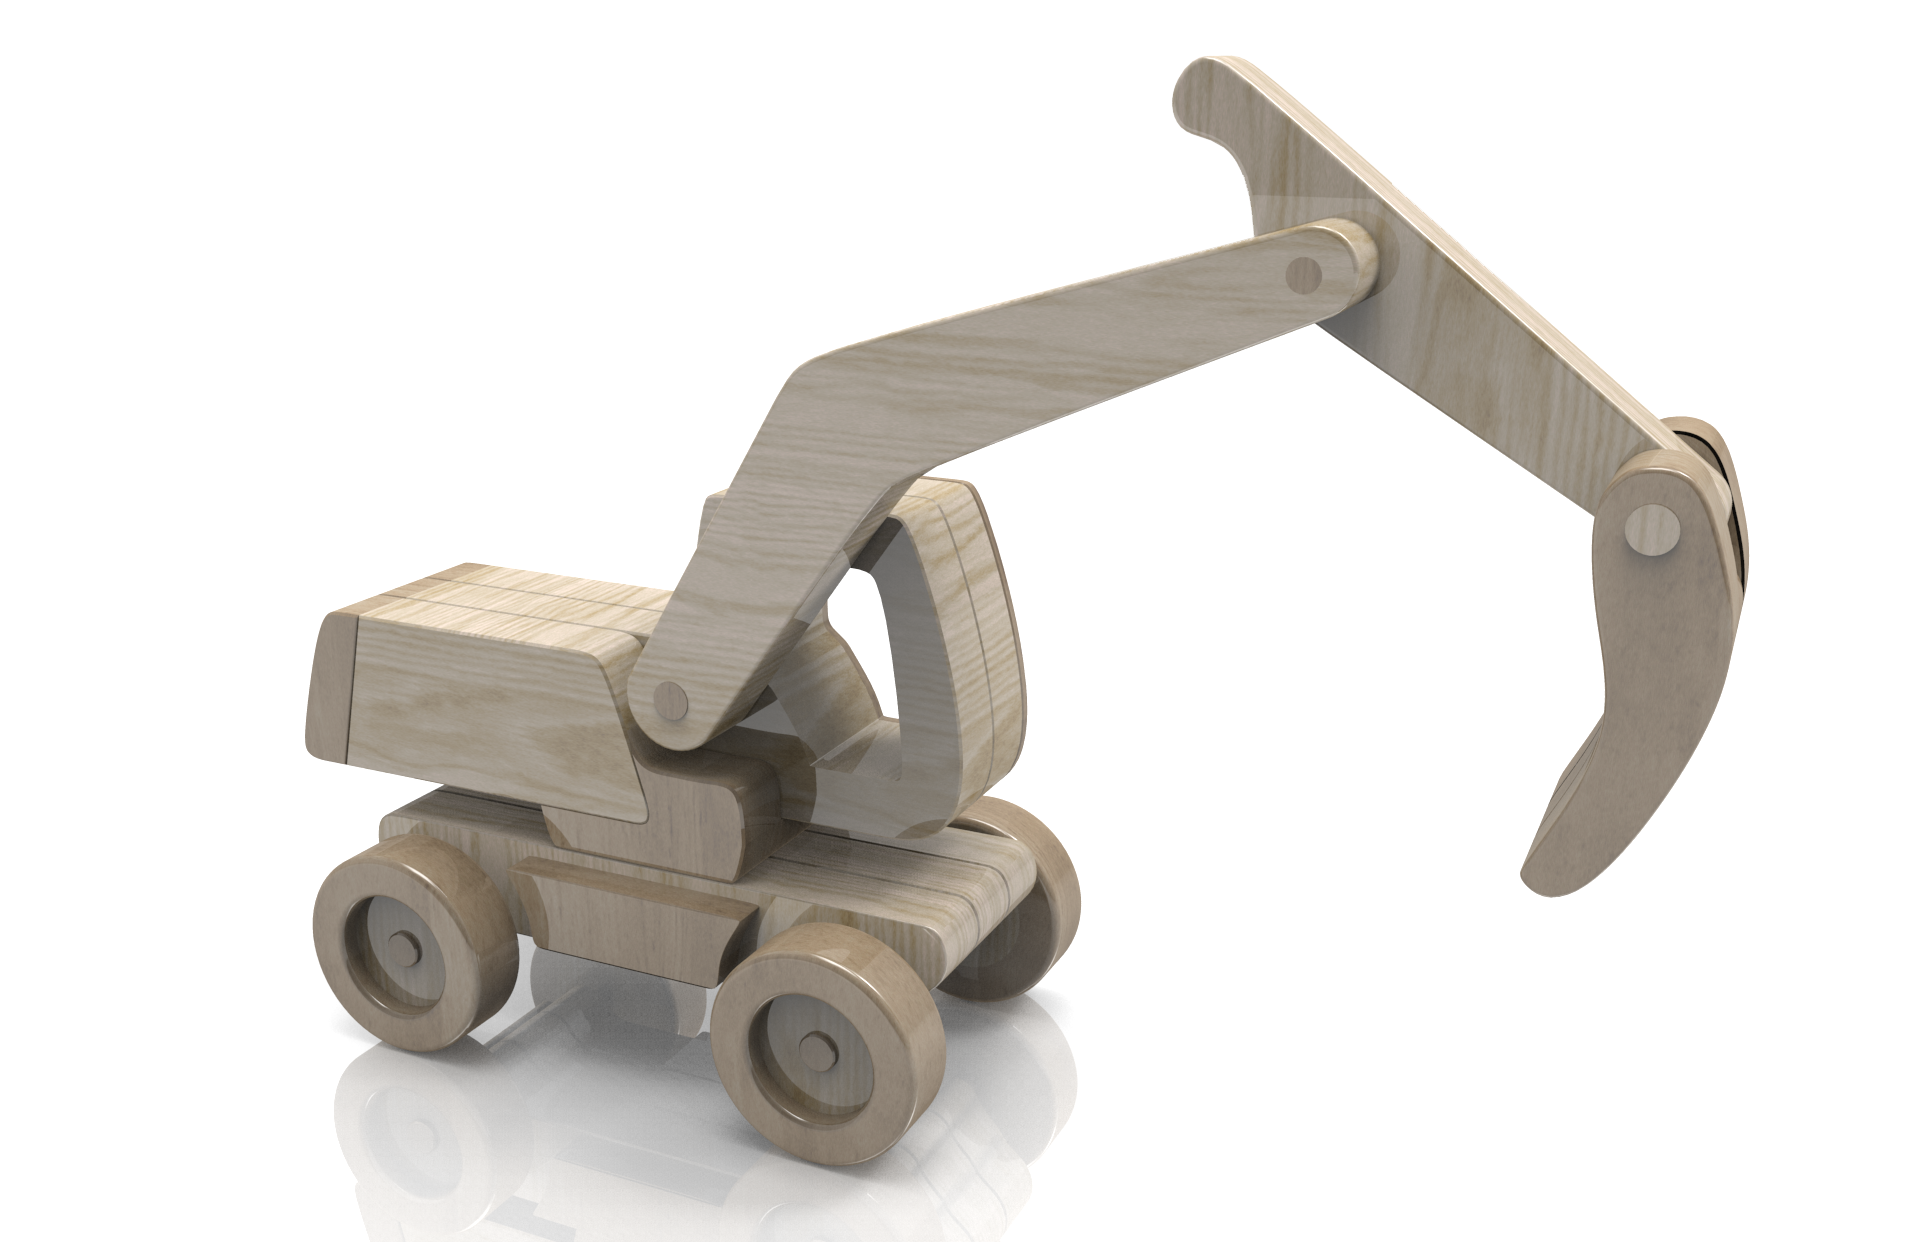 pinpaul burke on projects | wood toys plans, wood toys, toys